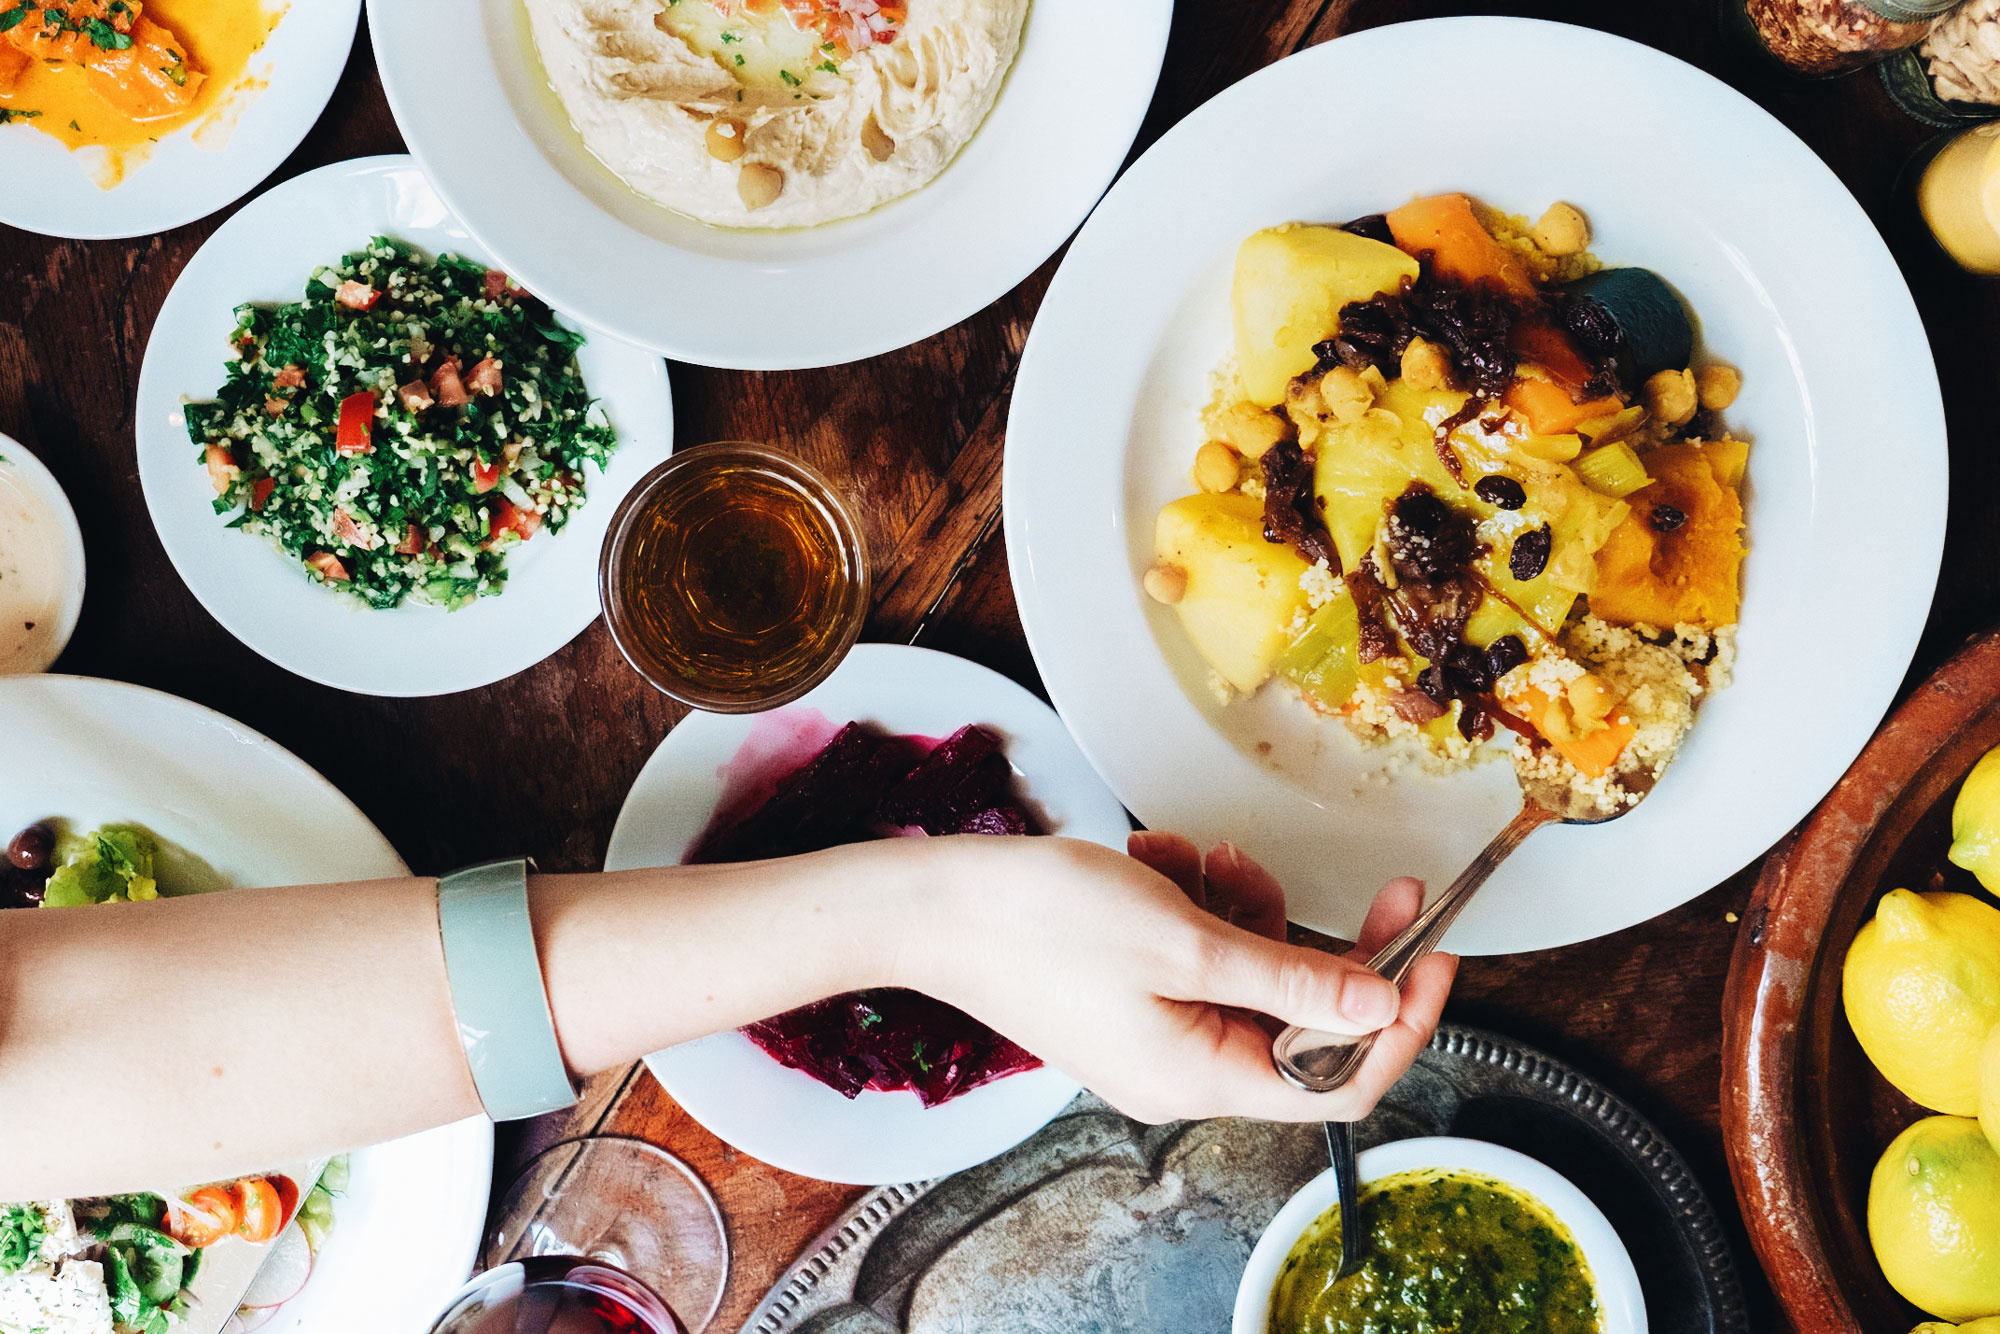 A womans hand reaching for the vegetable couscous. Hummus platter, tabouli, beets and lemons on the table.